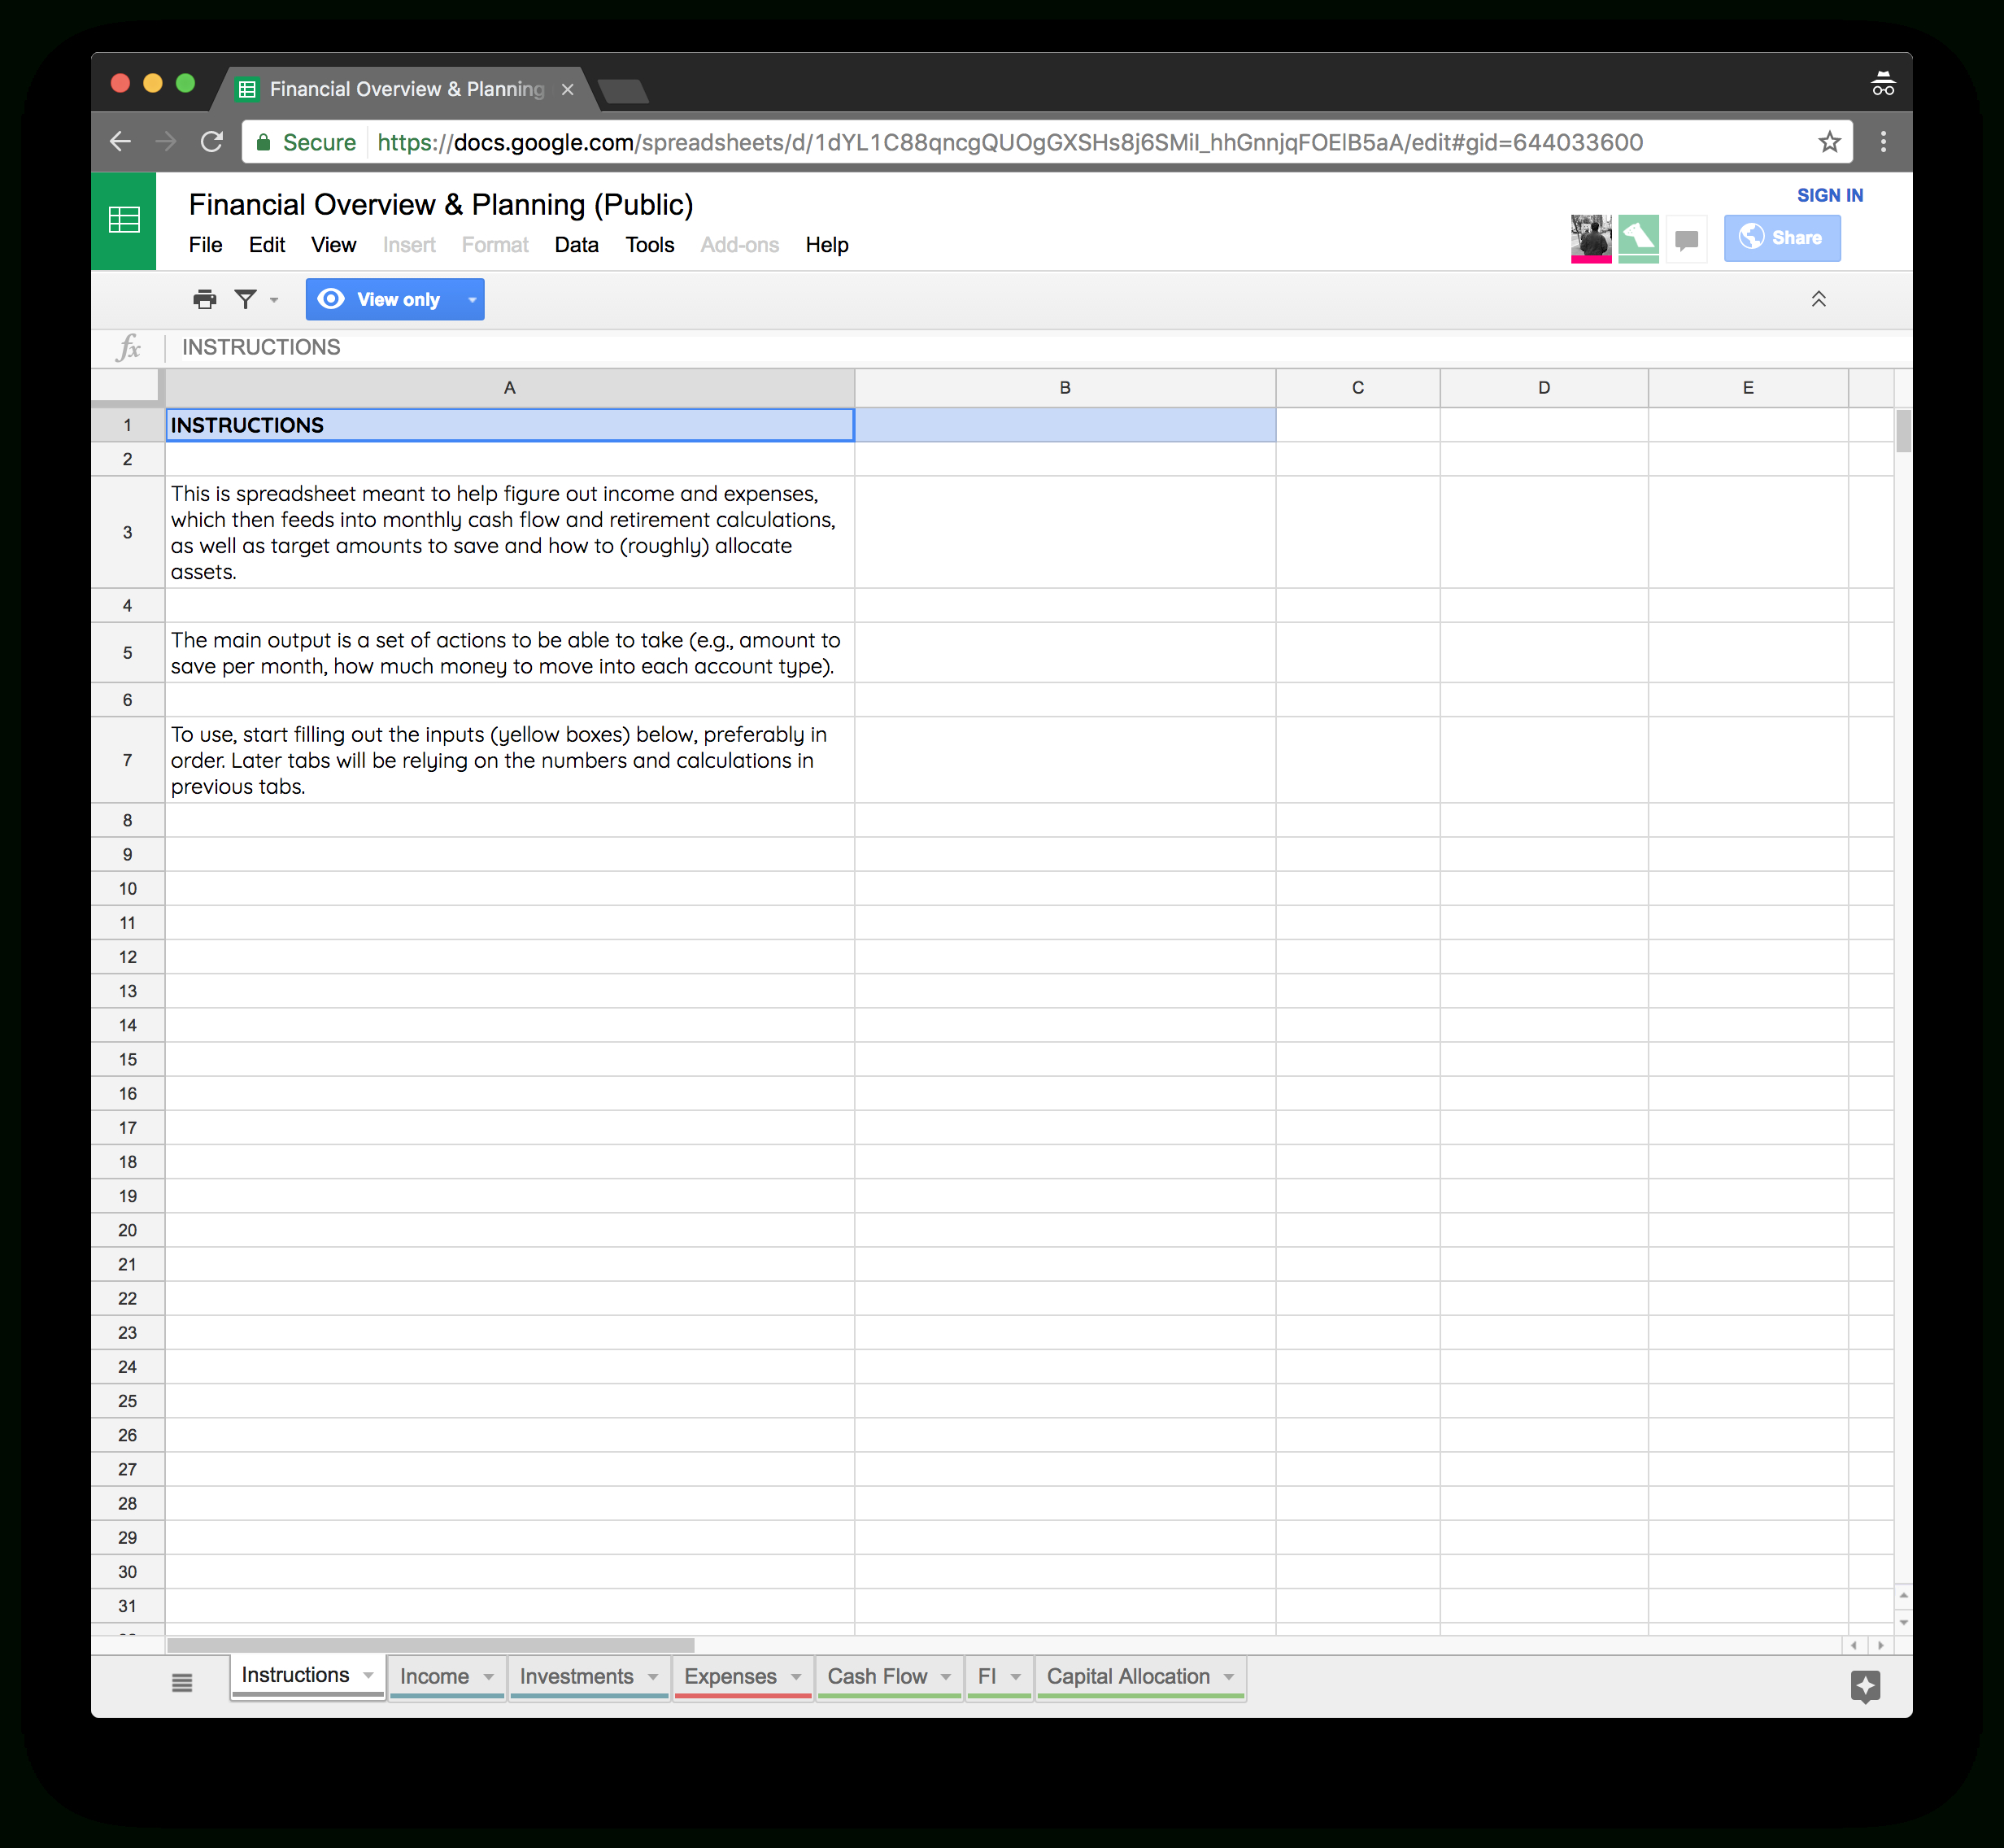 Buckets Of Money Spreadsheet For I Built My Own Financial Planning Spreadsheet Buckets Of Money Spreadsheet Printable Spreadshee Printable Spreadshee buckets of money spreadsheet